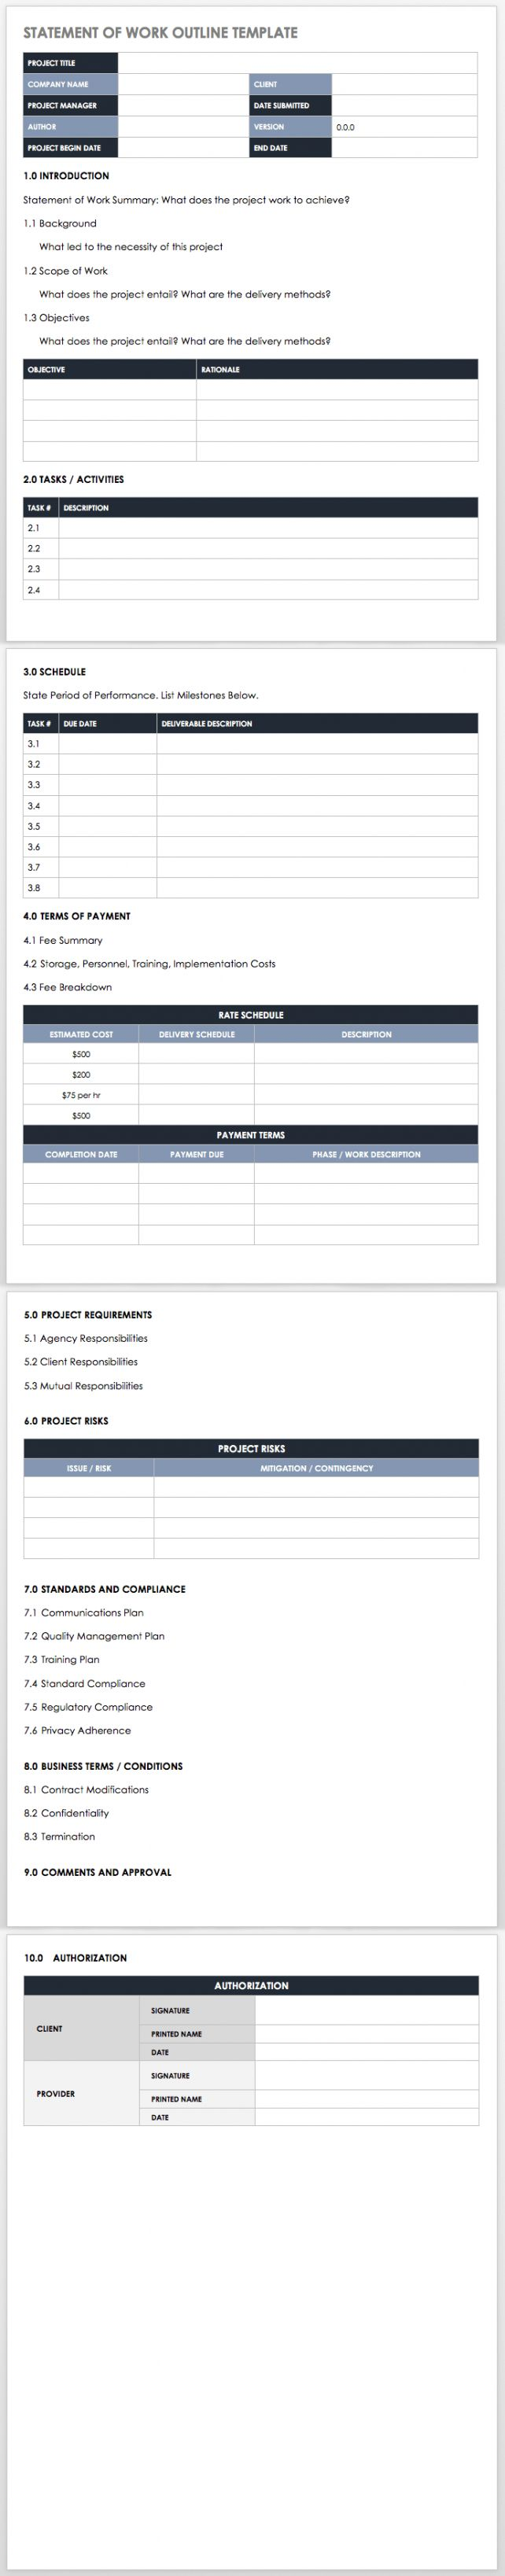 Free Scope Of Work Outline Template Excel In 2021 Statement Of Work Smartsheet Statement Template Free scope of work template